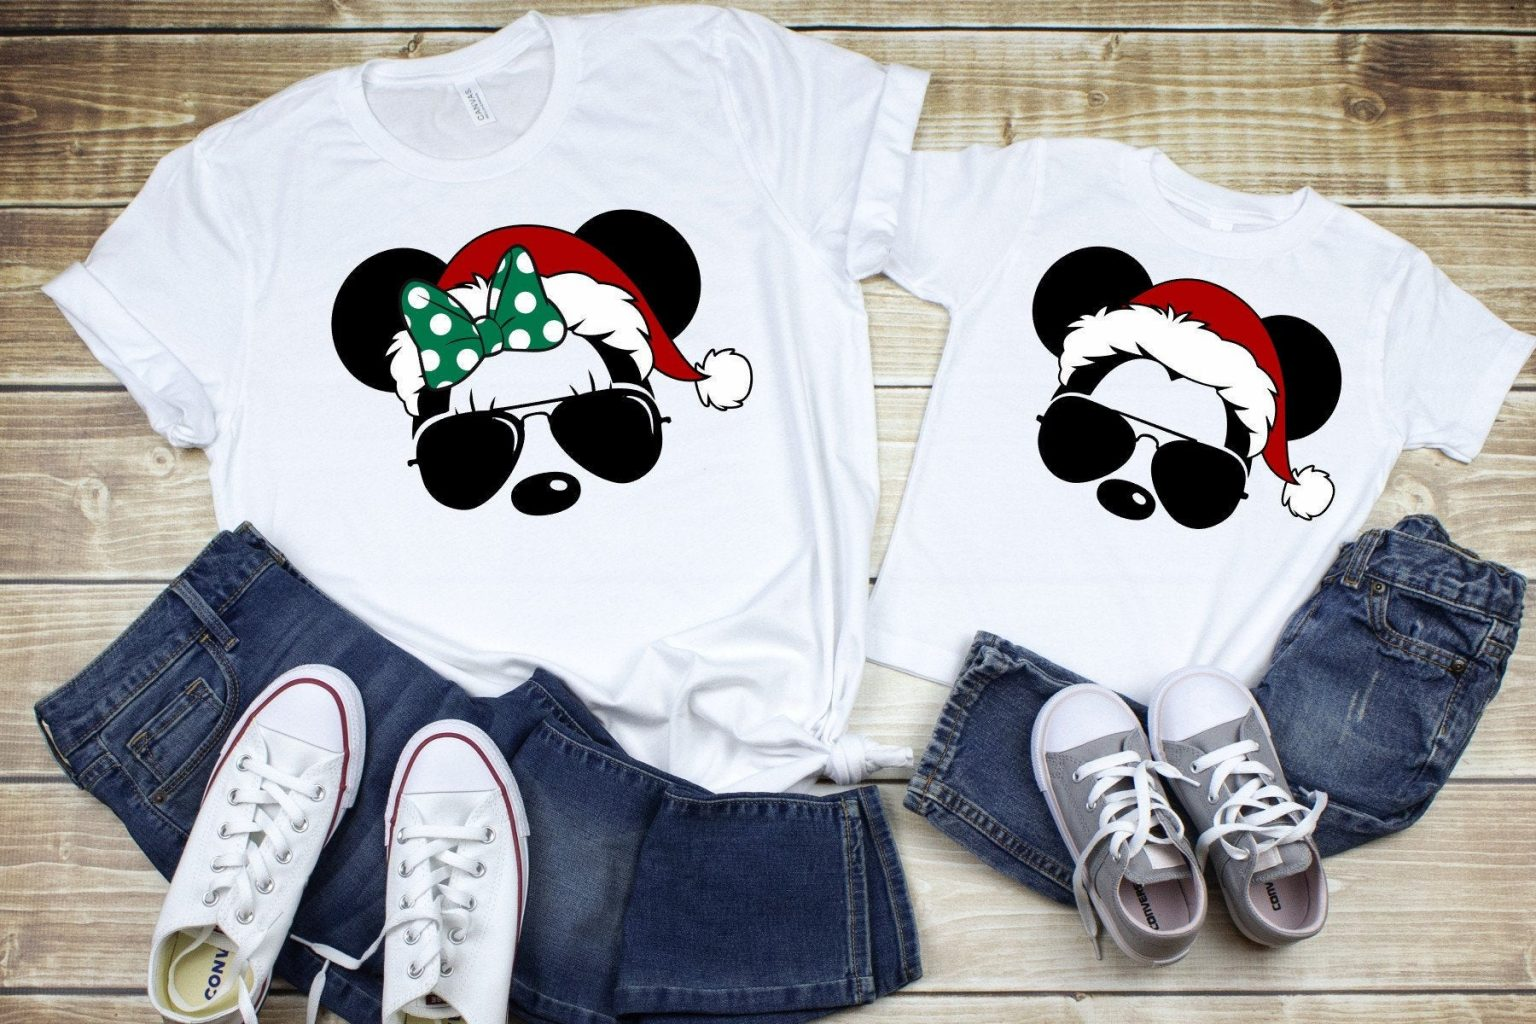 Too Cool Mickey And Minnie Mouse Shirts For The Holidays